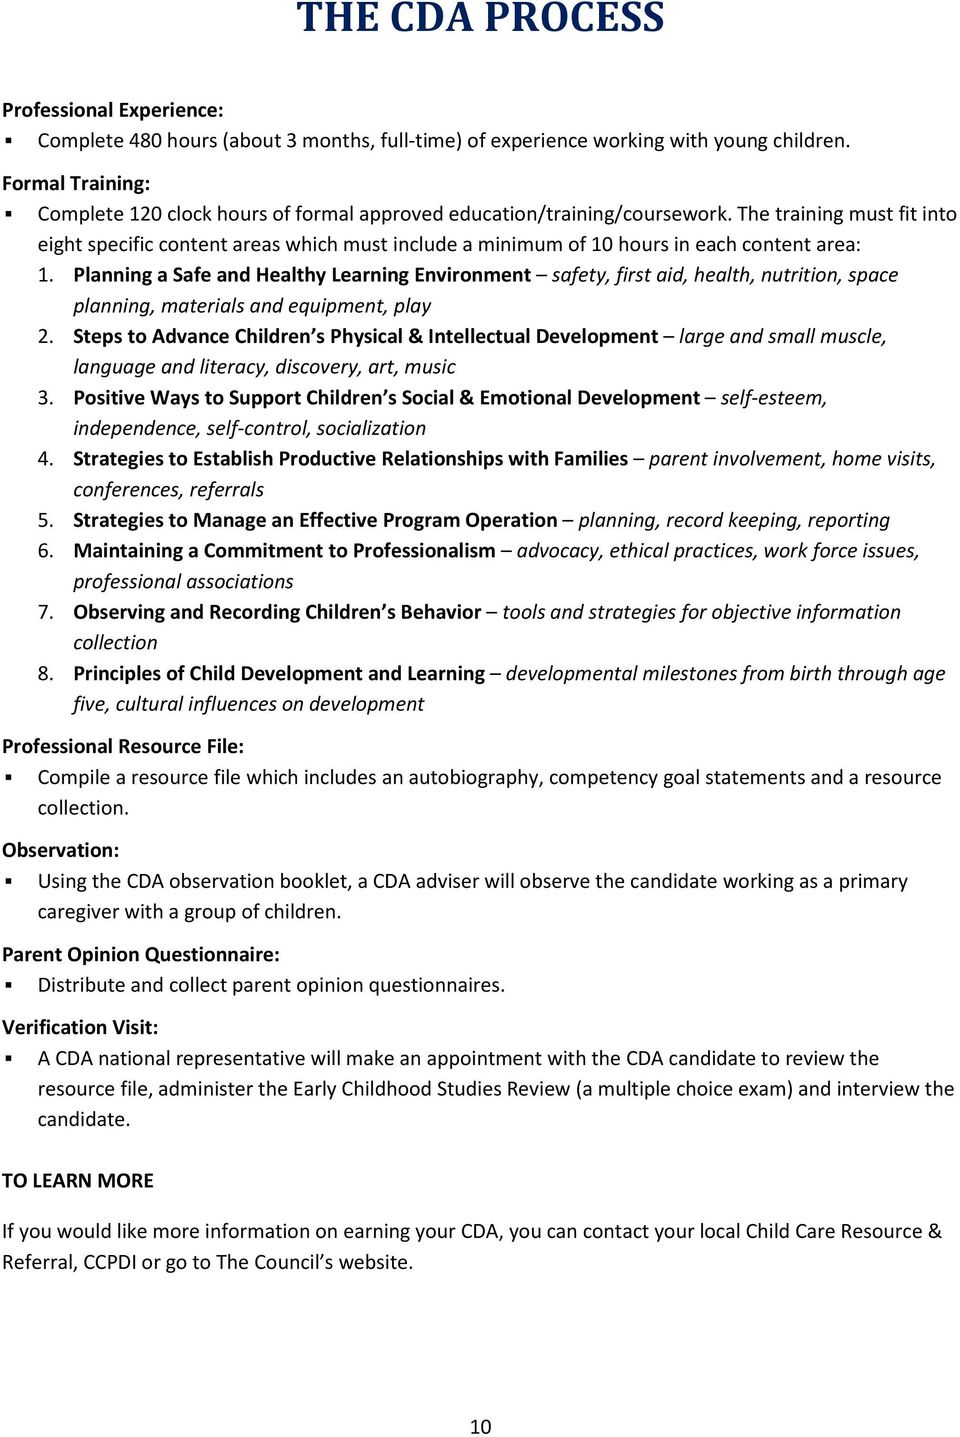 child care competency statements Competency statements- six goals agency which regulates child care centers in our state  to ensure a well-run, purposeful program responsive to participant needs.